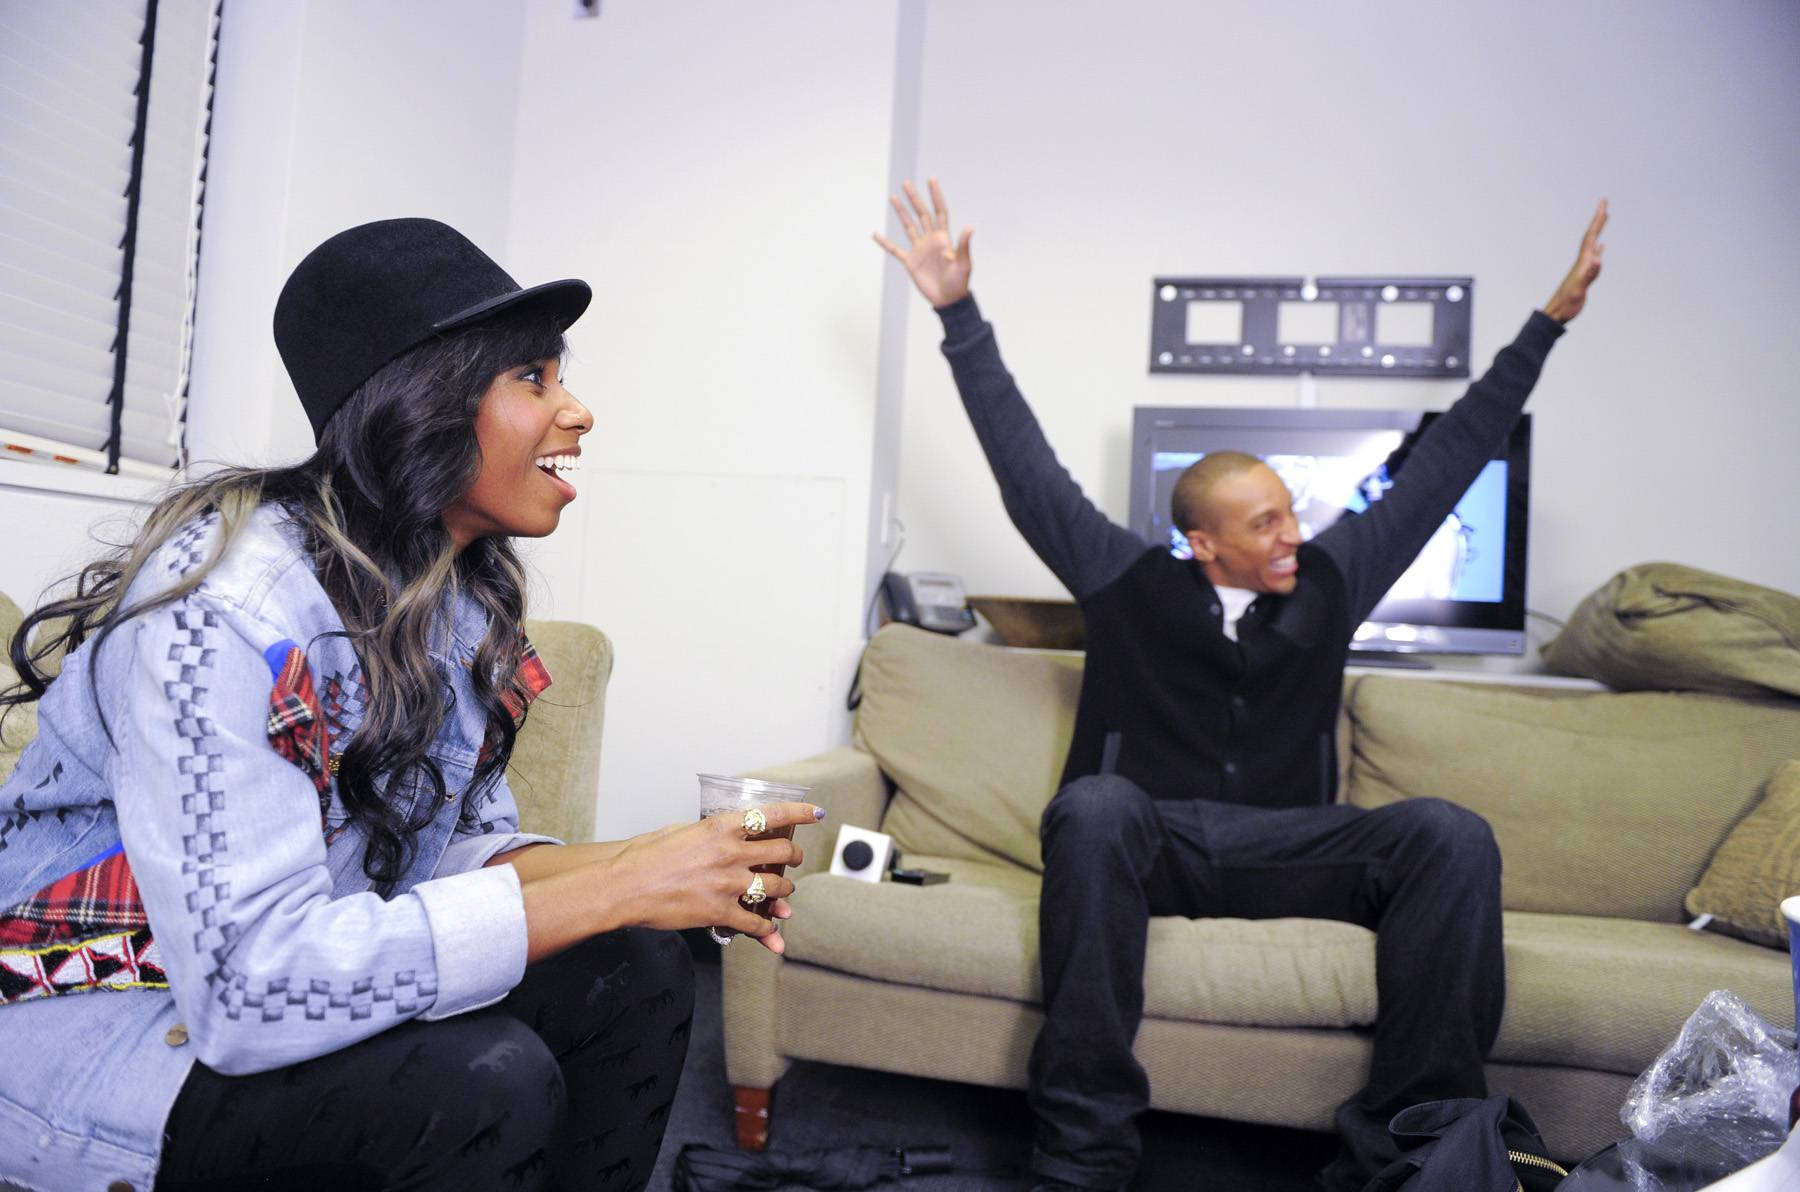 Put 'em Up - Santigold with Tony Anderson of BET.com in the green room at 106 & Park, May 2, 2012. (Photo: John Ricard/BET)